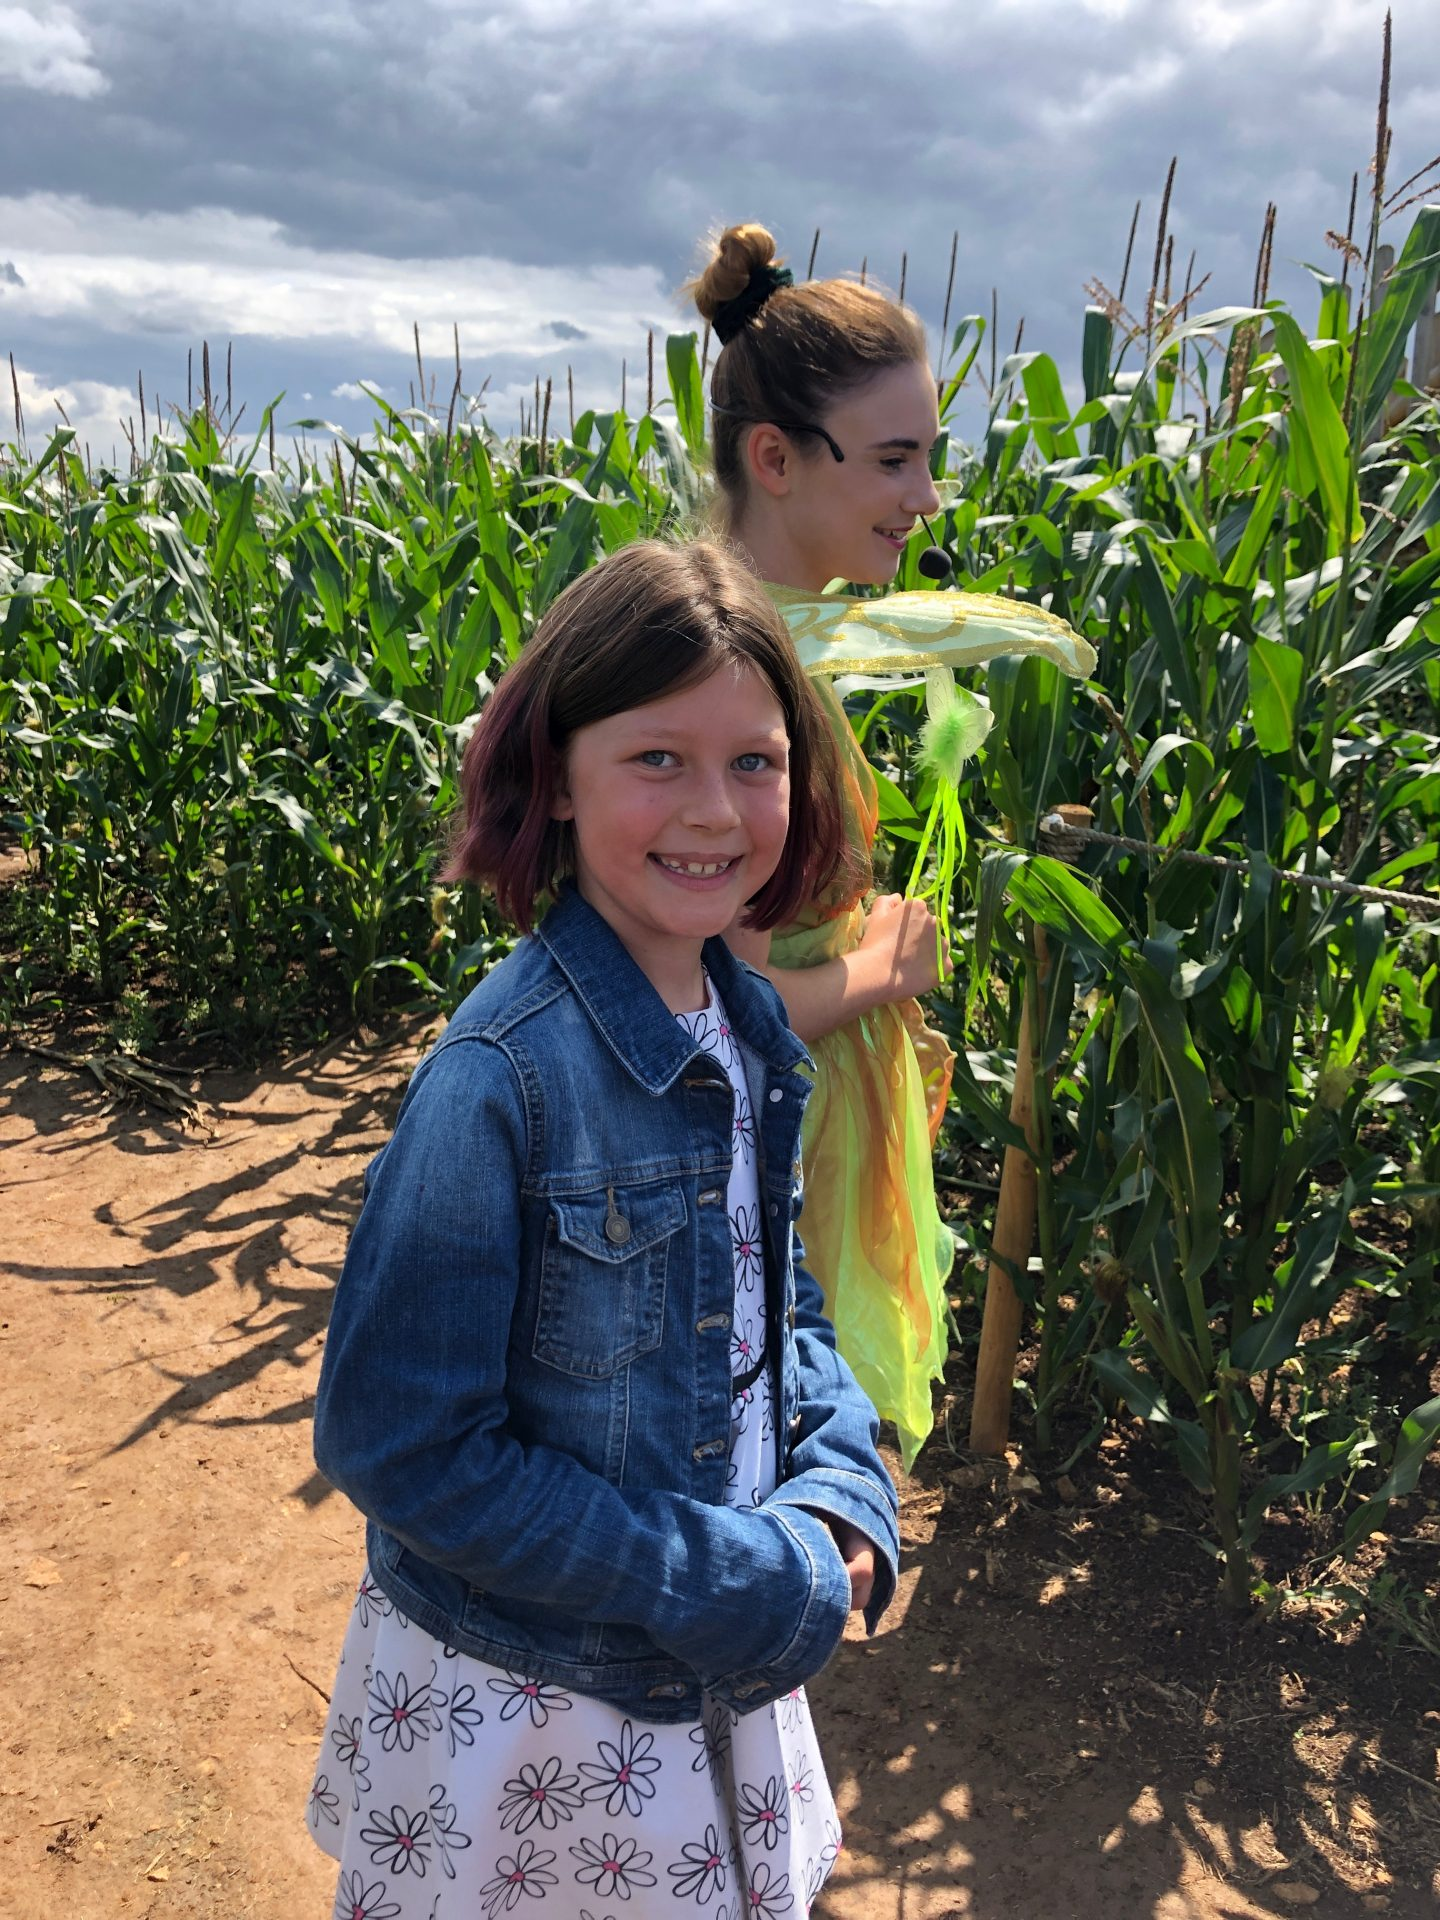 My lovely girl proudly helping Tinkerbell in the quest to defeat the mean Captain Hook in the live action pantomime style show in the maize maze at the Cotswold Farm Park.